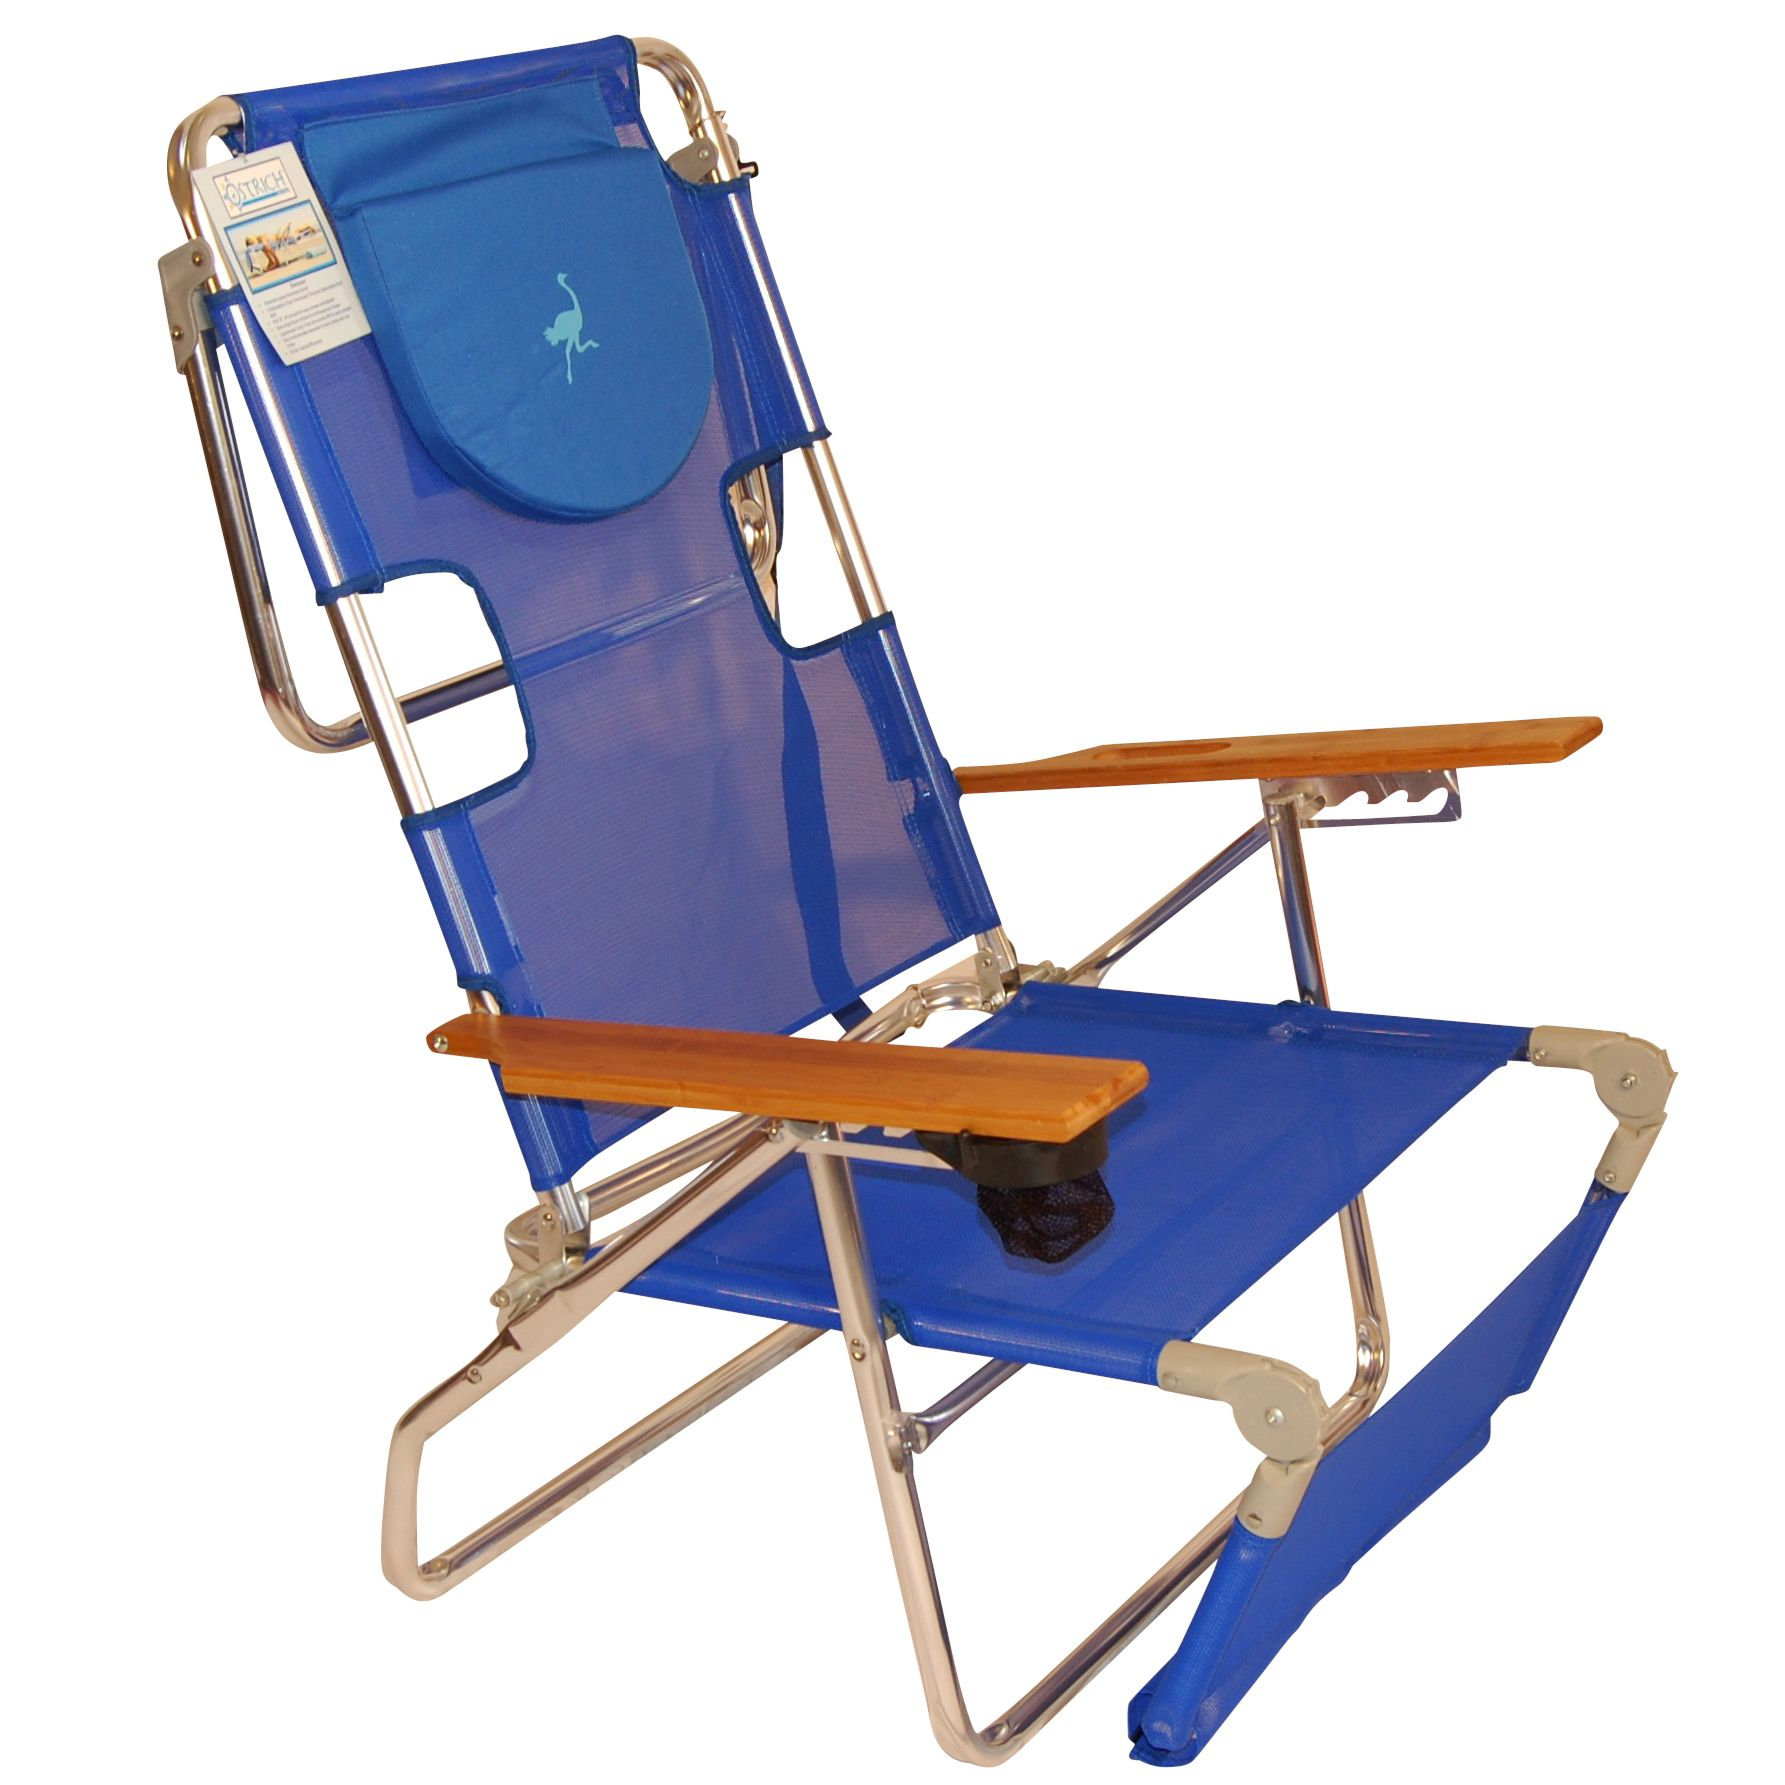 wholesale beach chairs costco deck fresh backpack chair rtty1